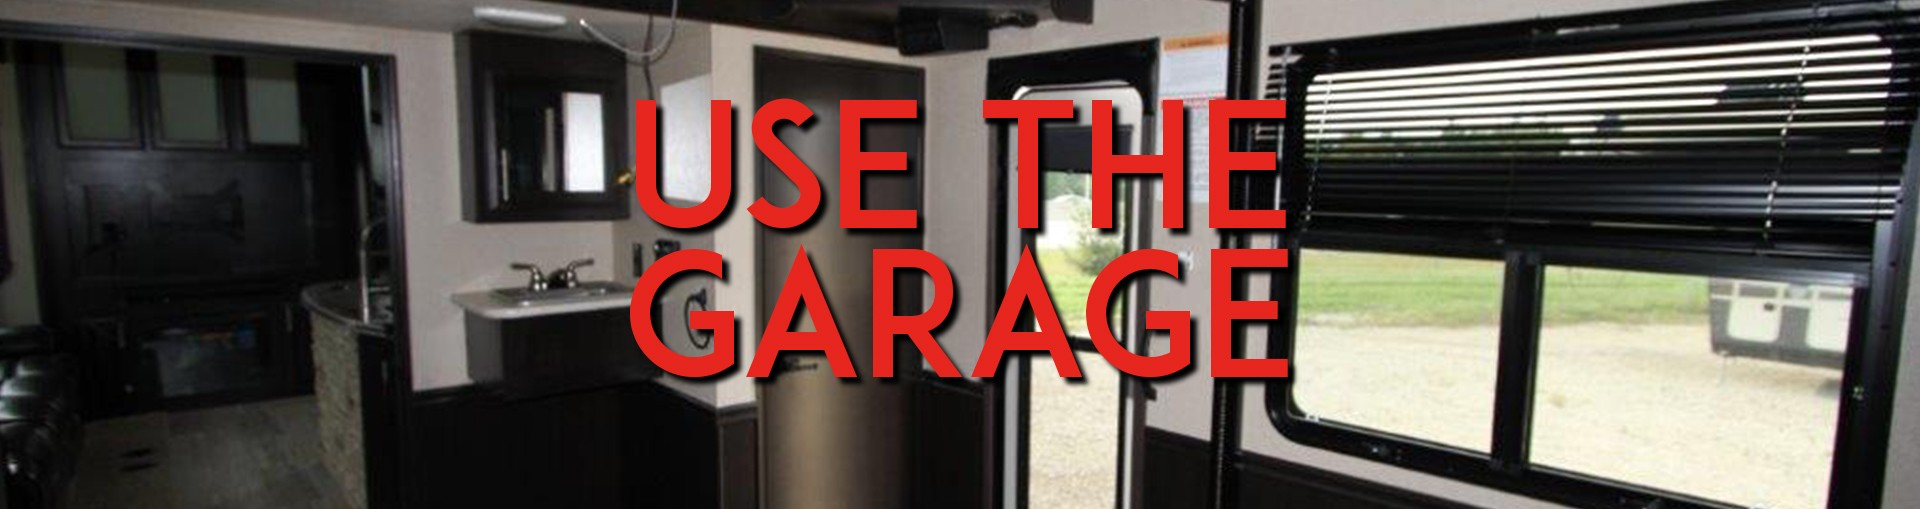 use the garage